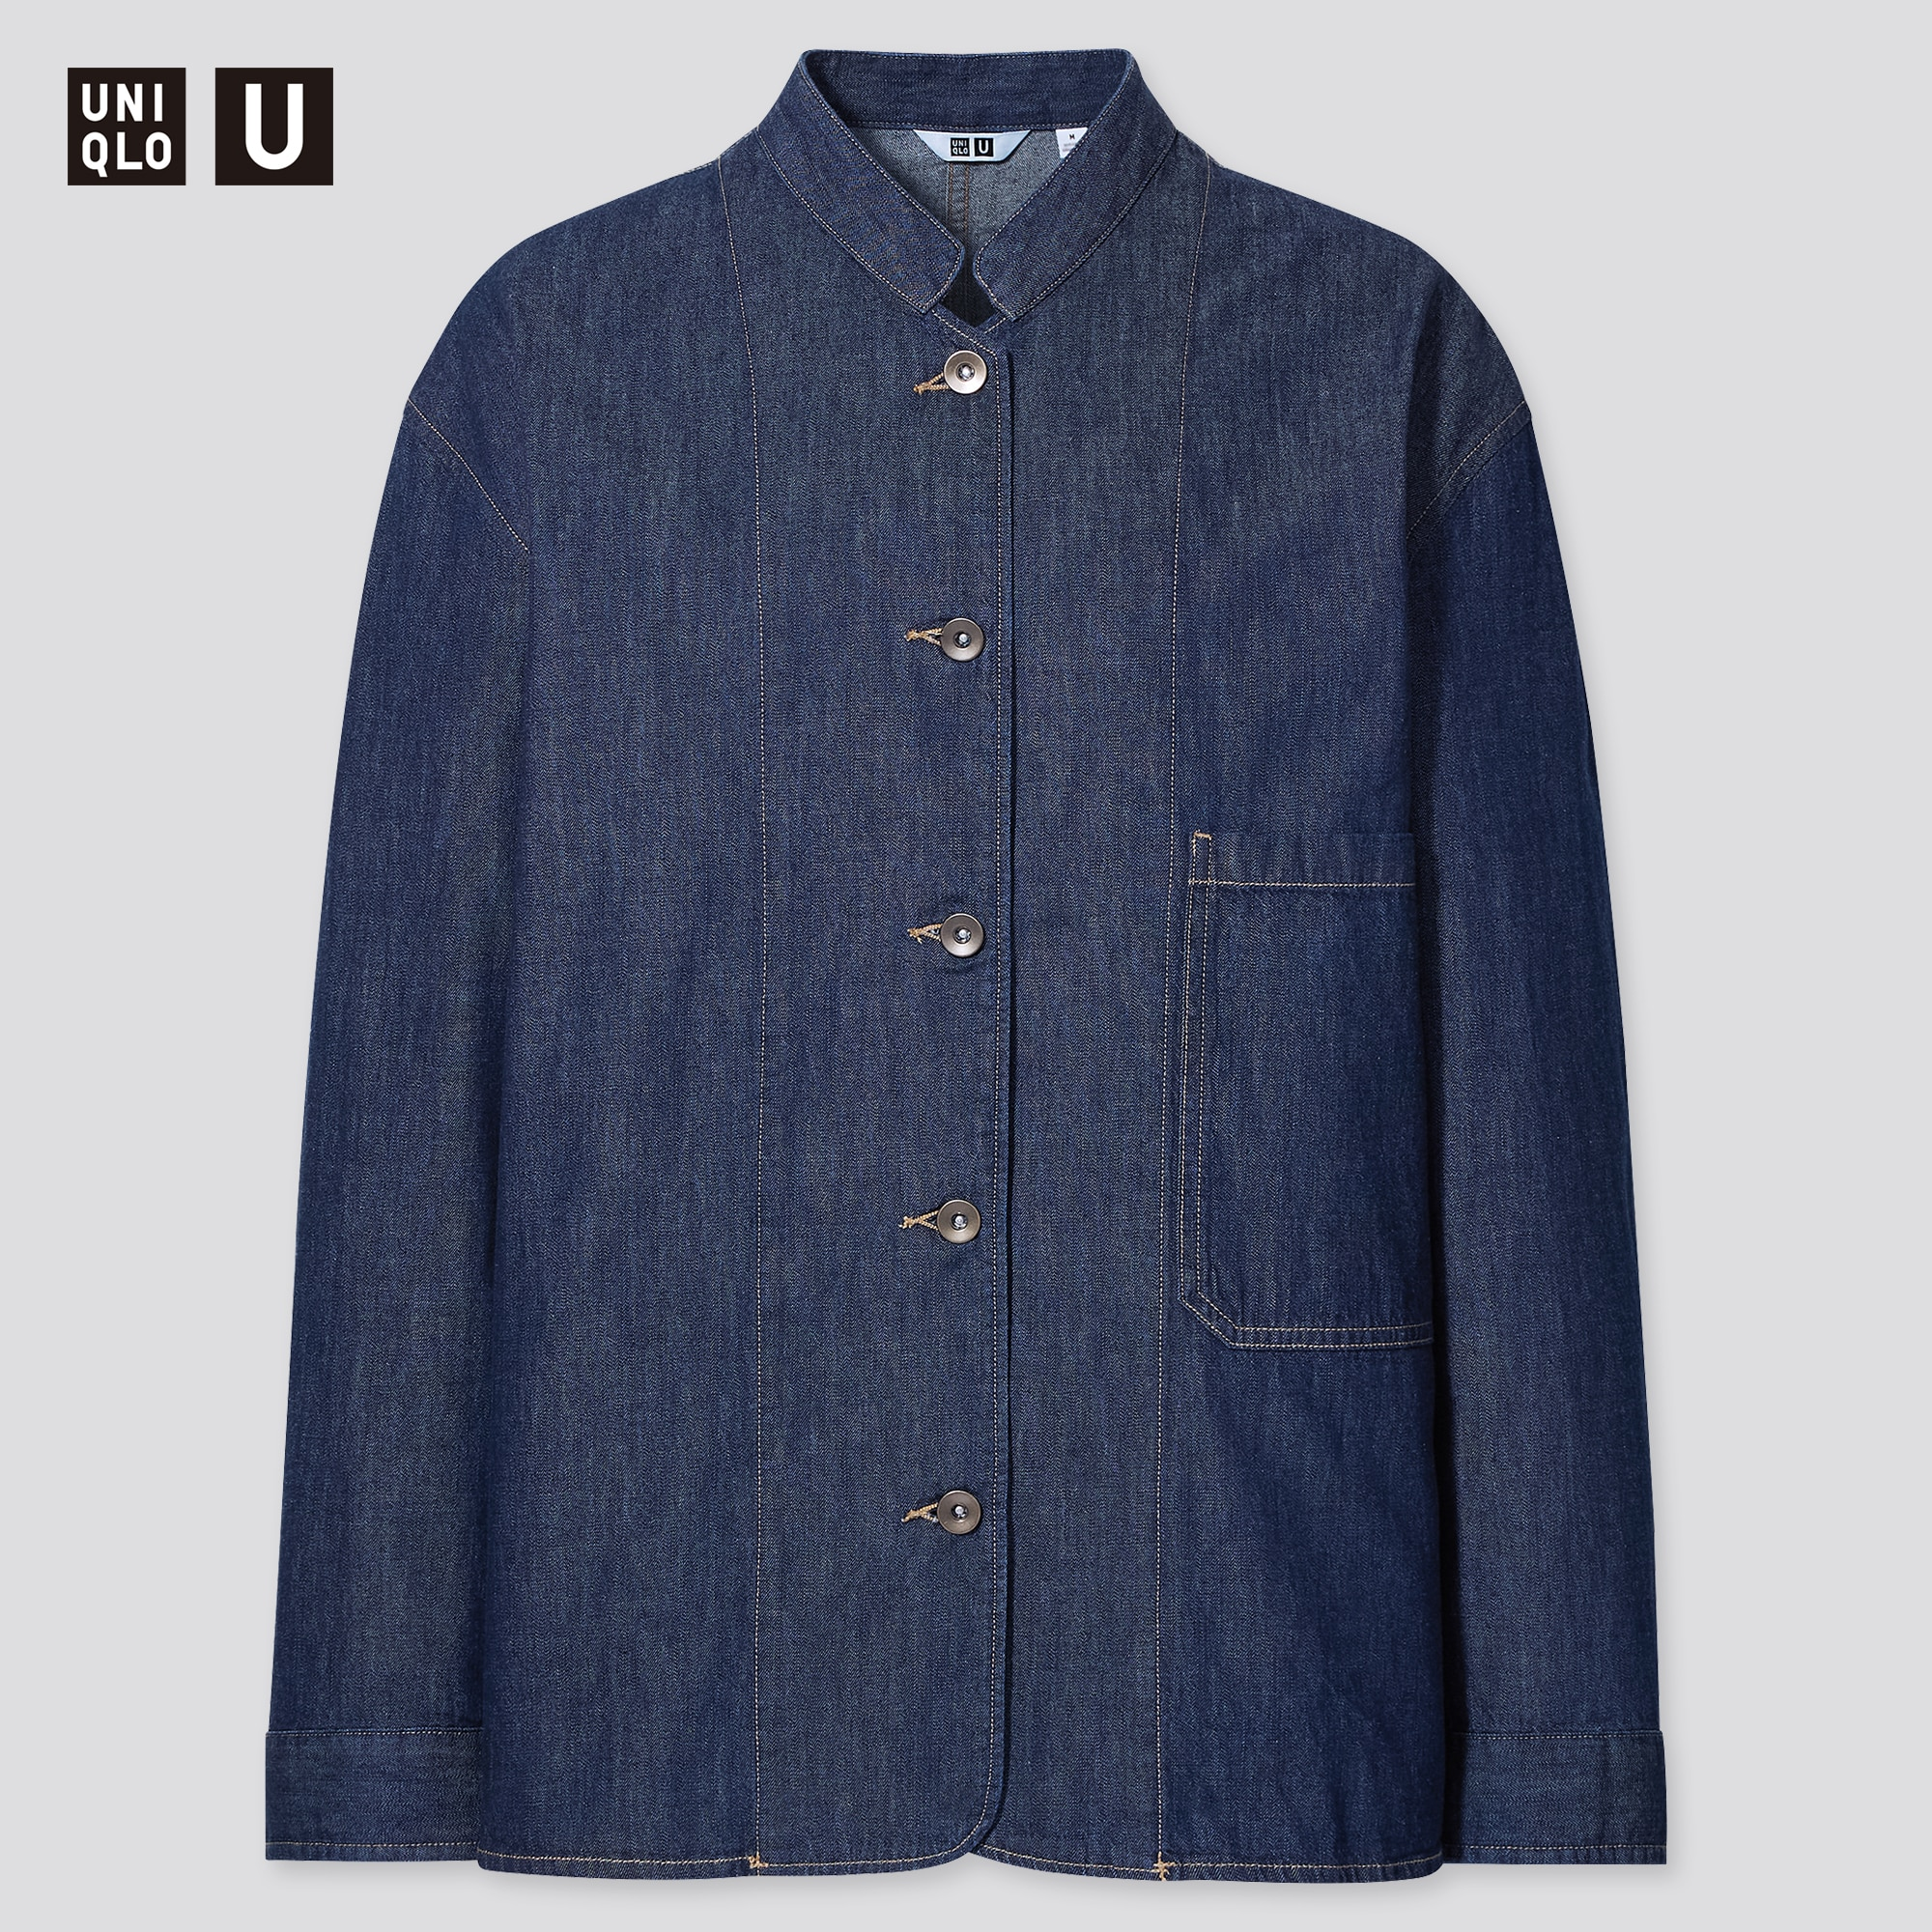 WOMEN U LIGHTWEIGHT DENIM COVERALL